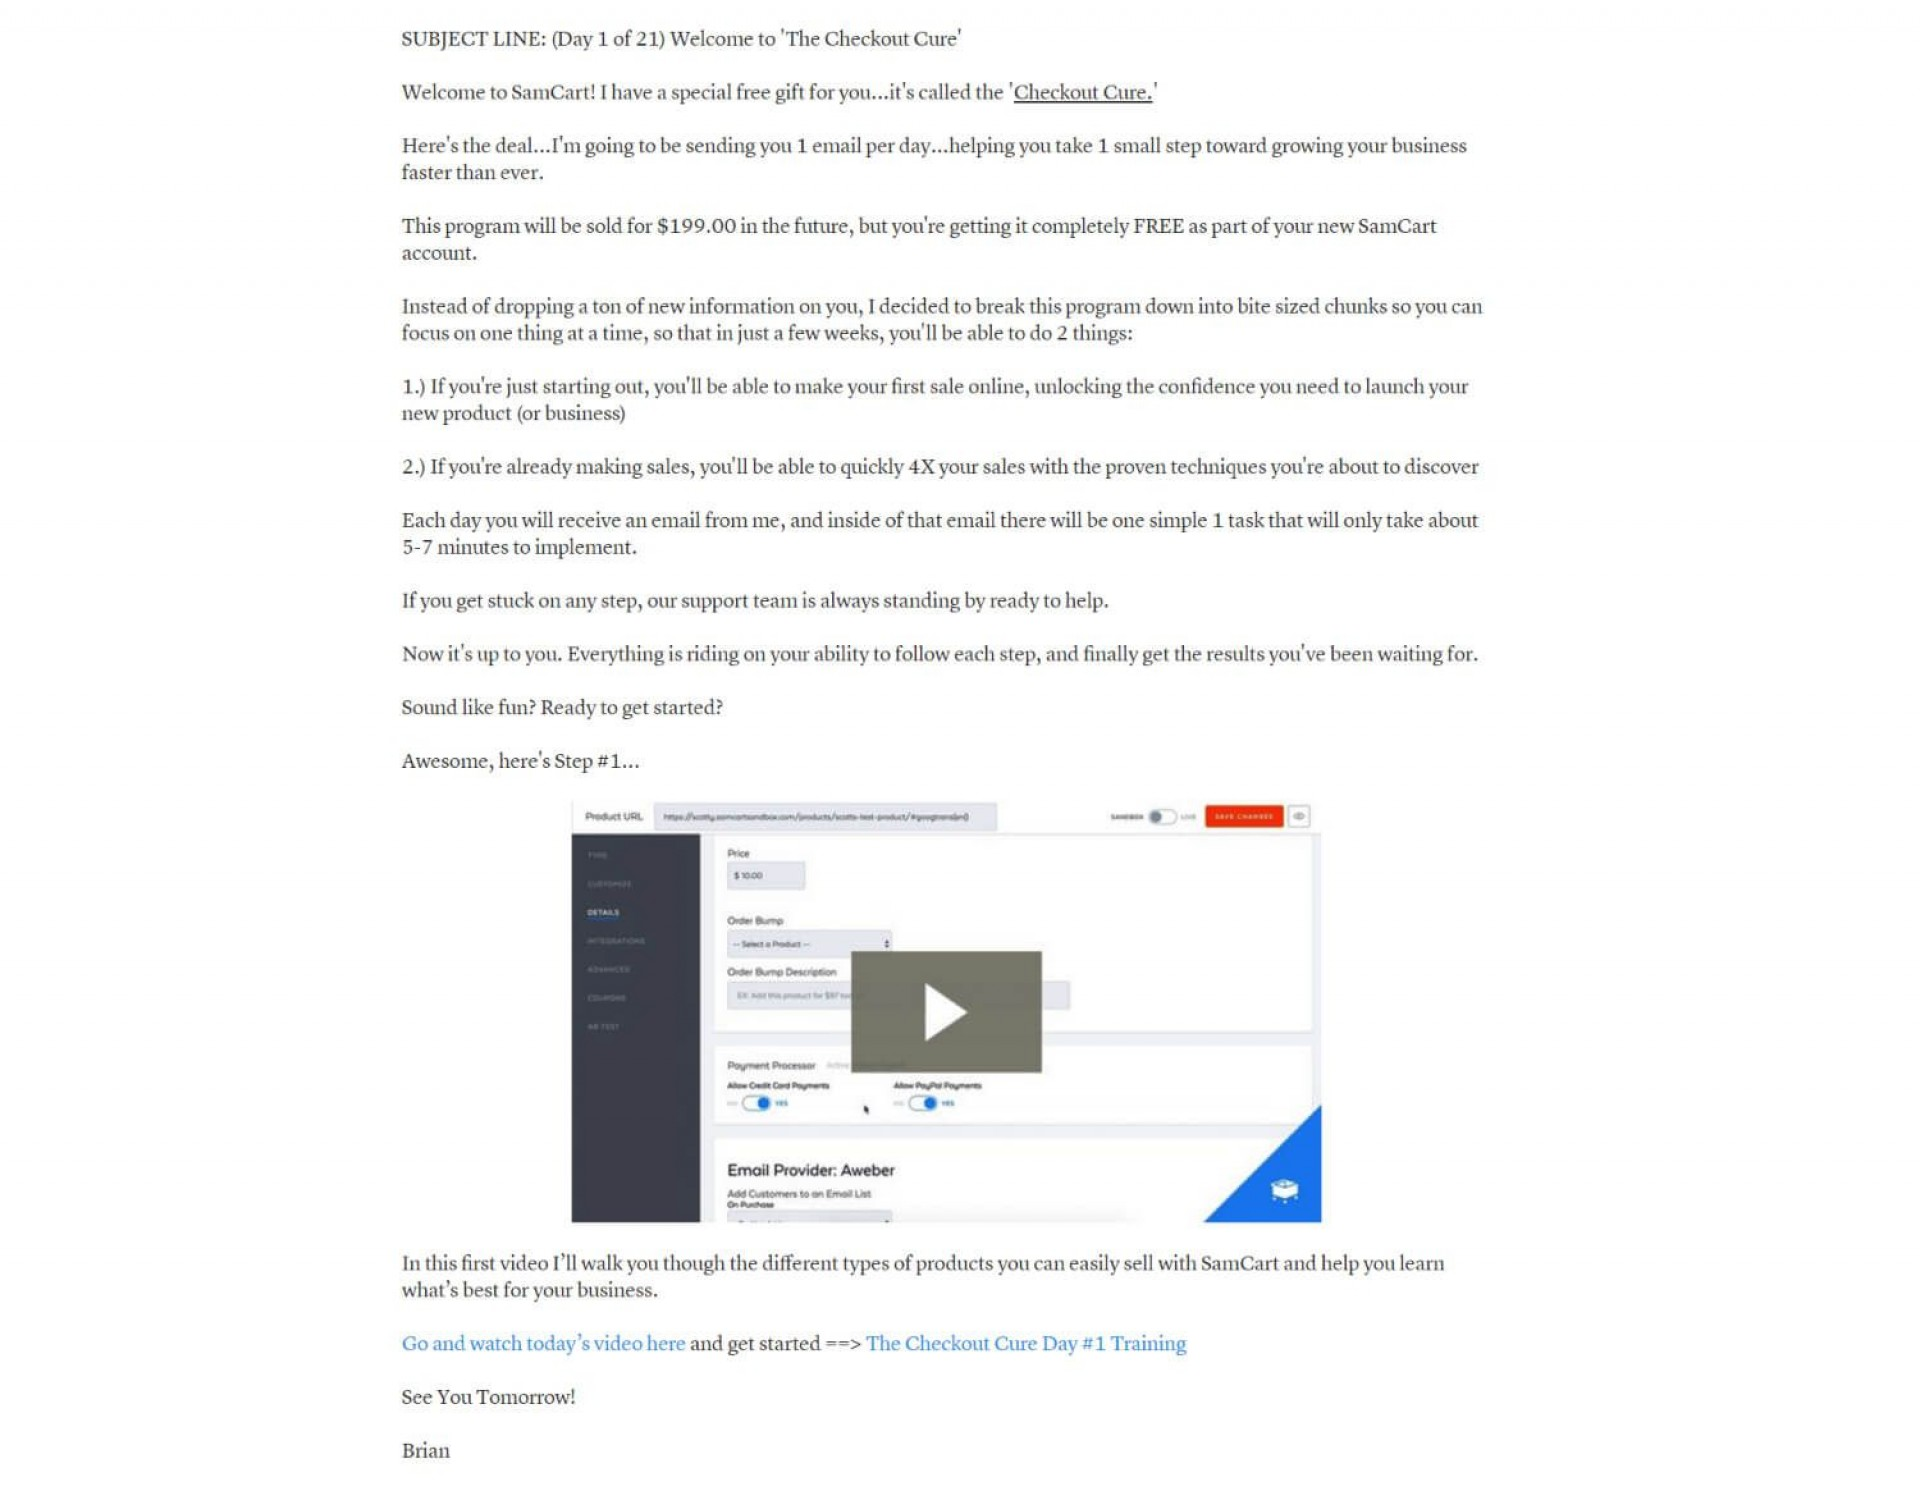 008 Marvelou Follow Up Email Template To Client Inspiration  Simple Letter For Payment After Sending Proposal1920